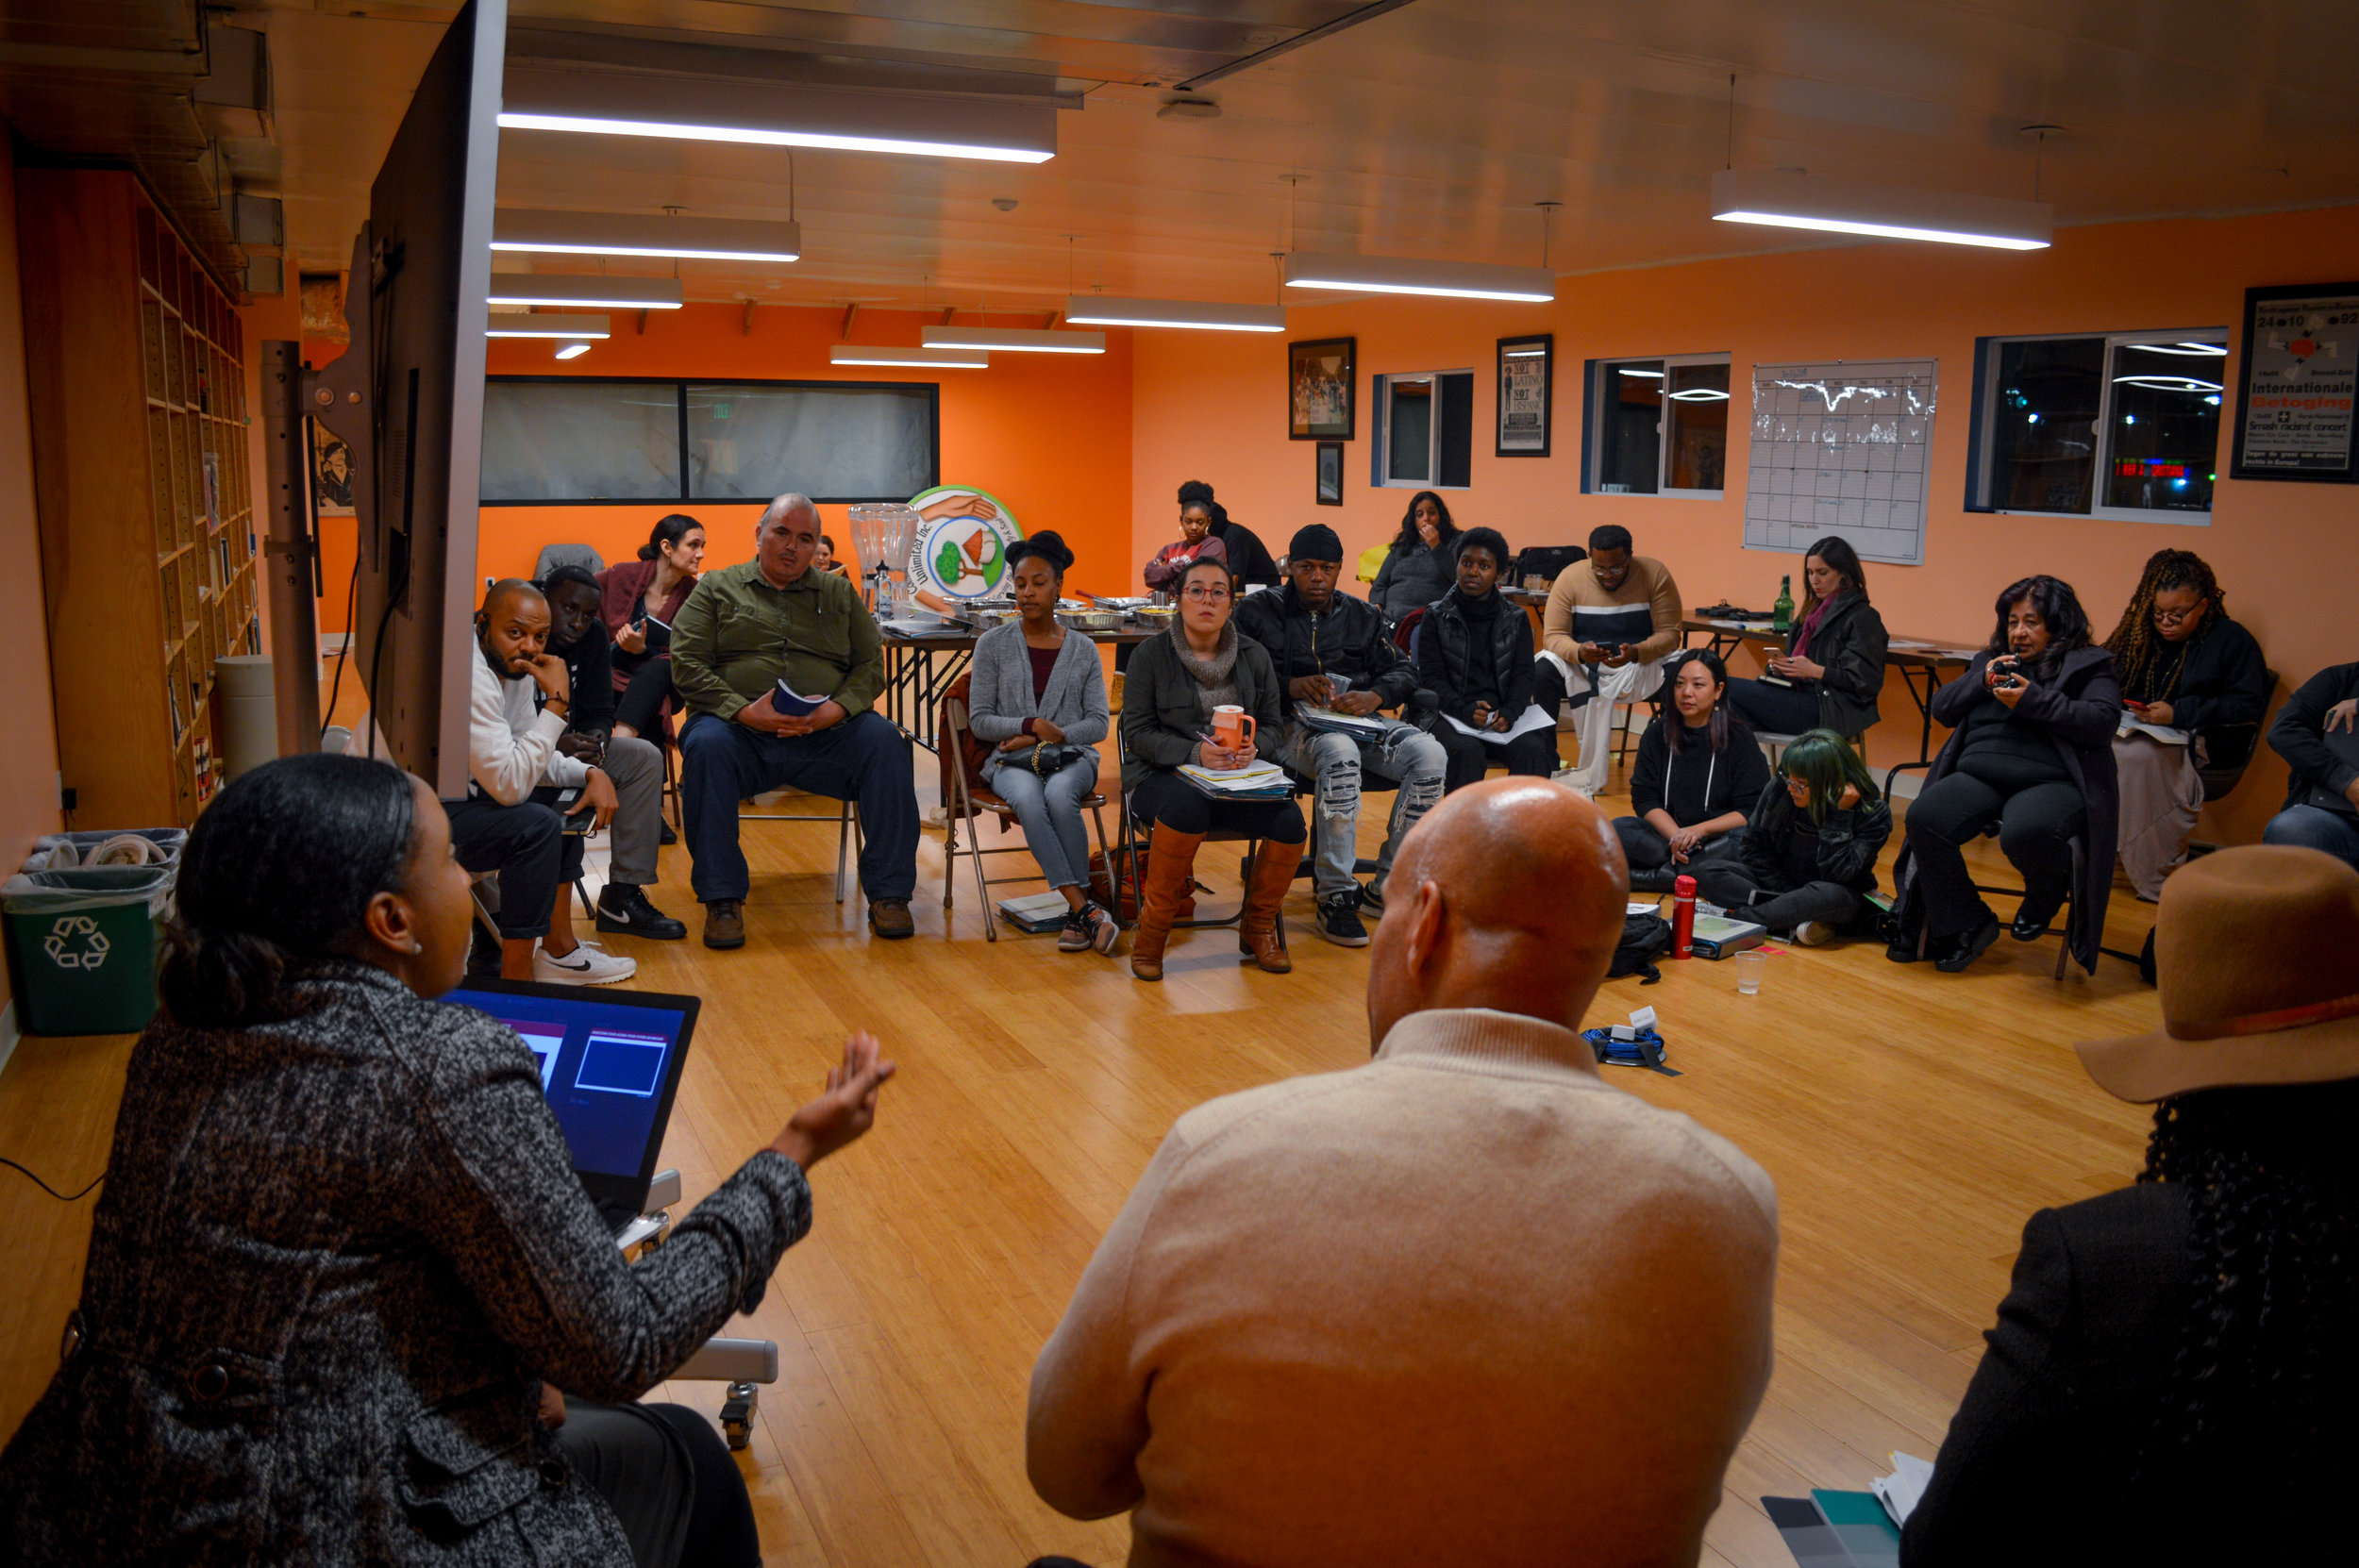 Food Leaders Lab - The Food Leaders Lab (FLL) is a leadership training program offered by the Los Angeles Food Policy Council.The Food Leaders Lab trains community advocates and residents on the histories of food justice movements, political leadership, and strategies for a healthy, resilient and just food system in Los Angeles through a ten-week intergenerational, multi-lingual course.Each Food Leaders Lab session explores food system dynamics and case studies from various social movements including anti-hunger and community food security, food sovereignty and regenerative agriculture. In addition, the Food Leaders Lab emphasizes leadership development and skill building relevant to policy, advocacy and community organizing.